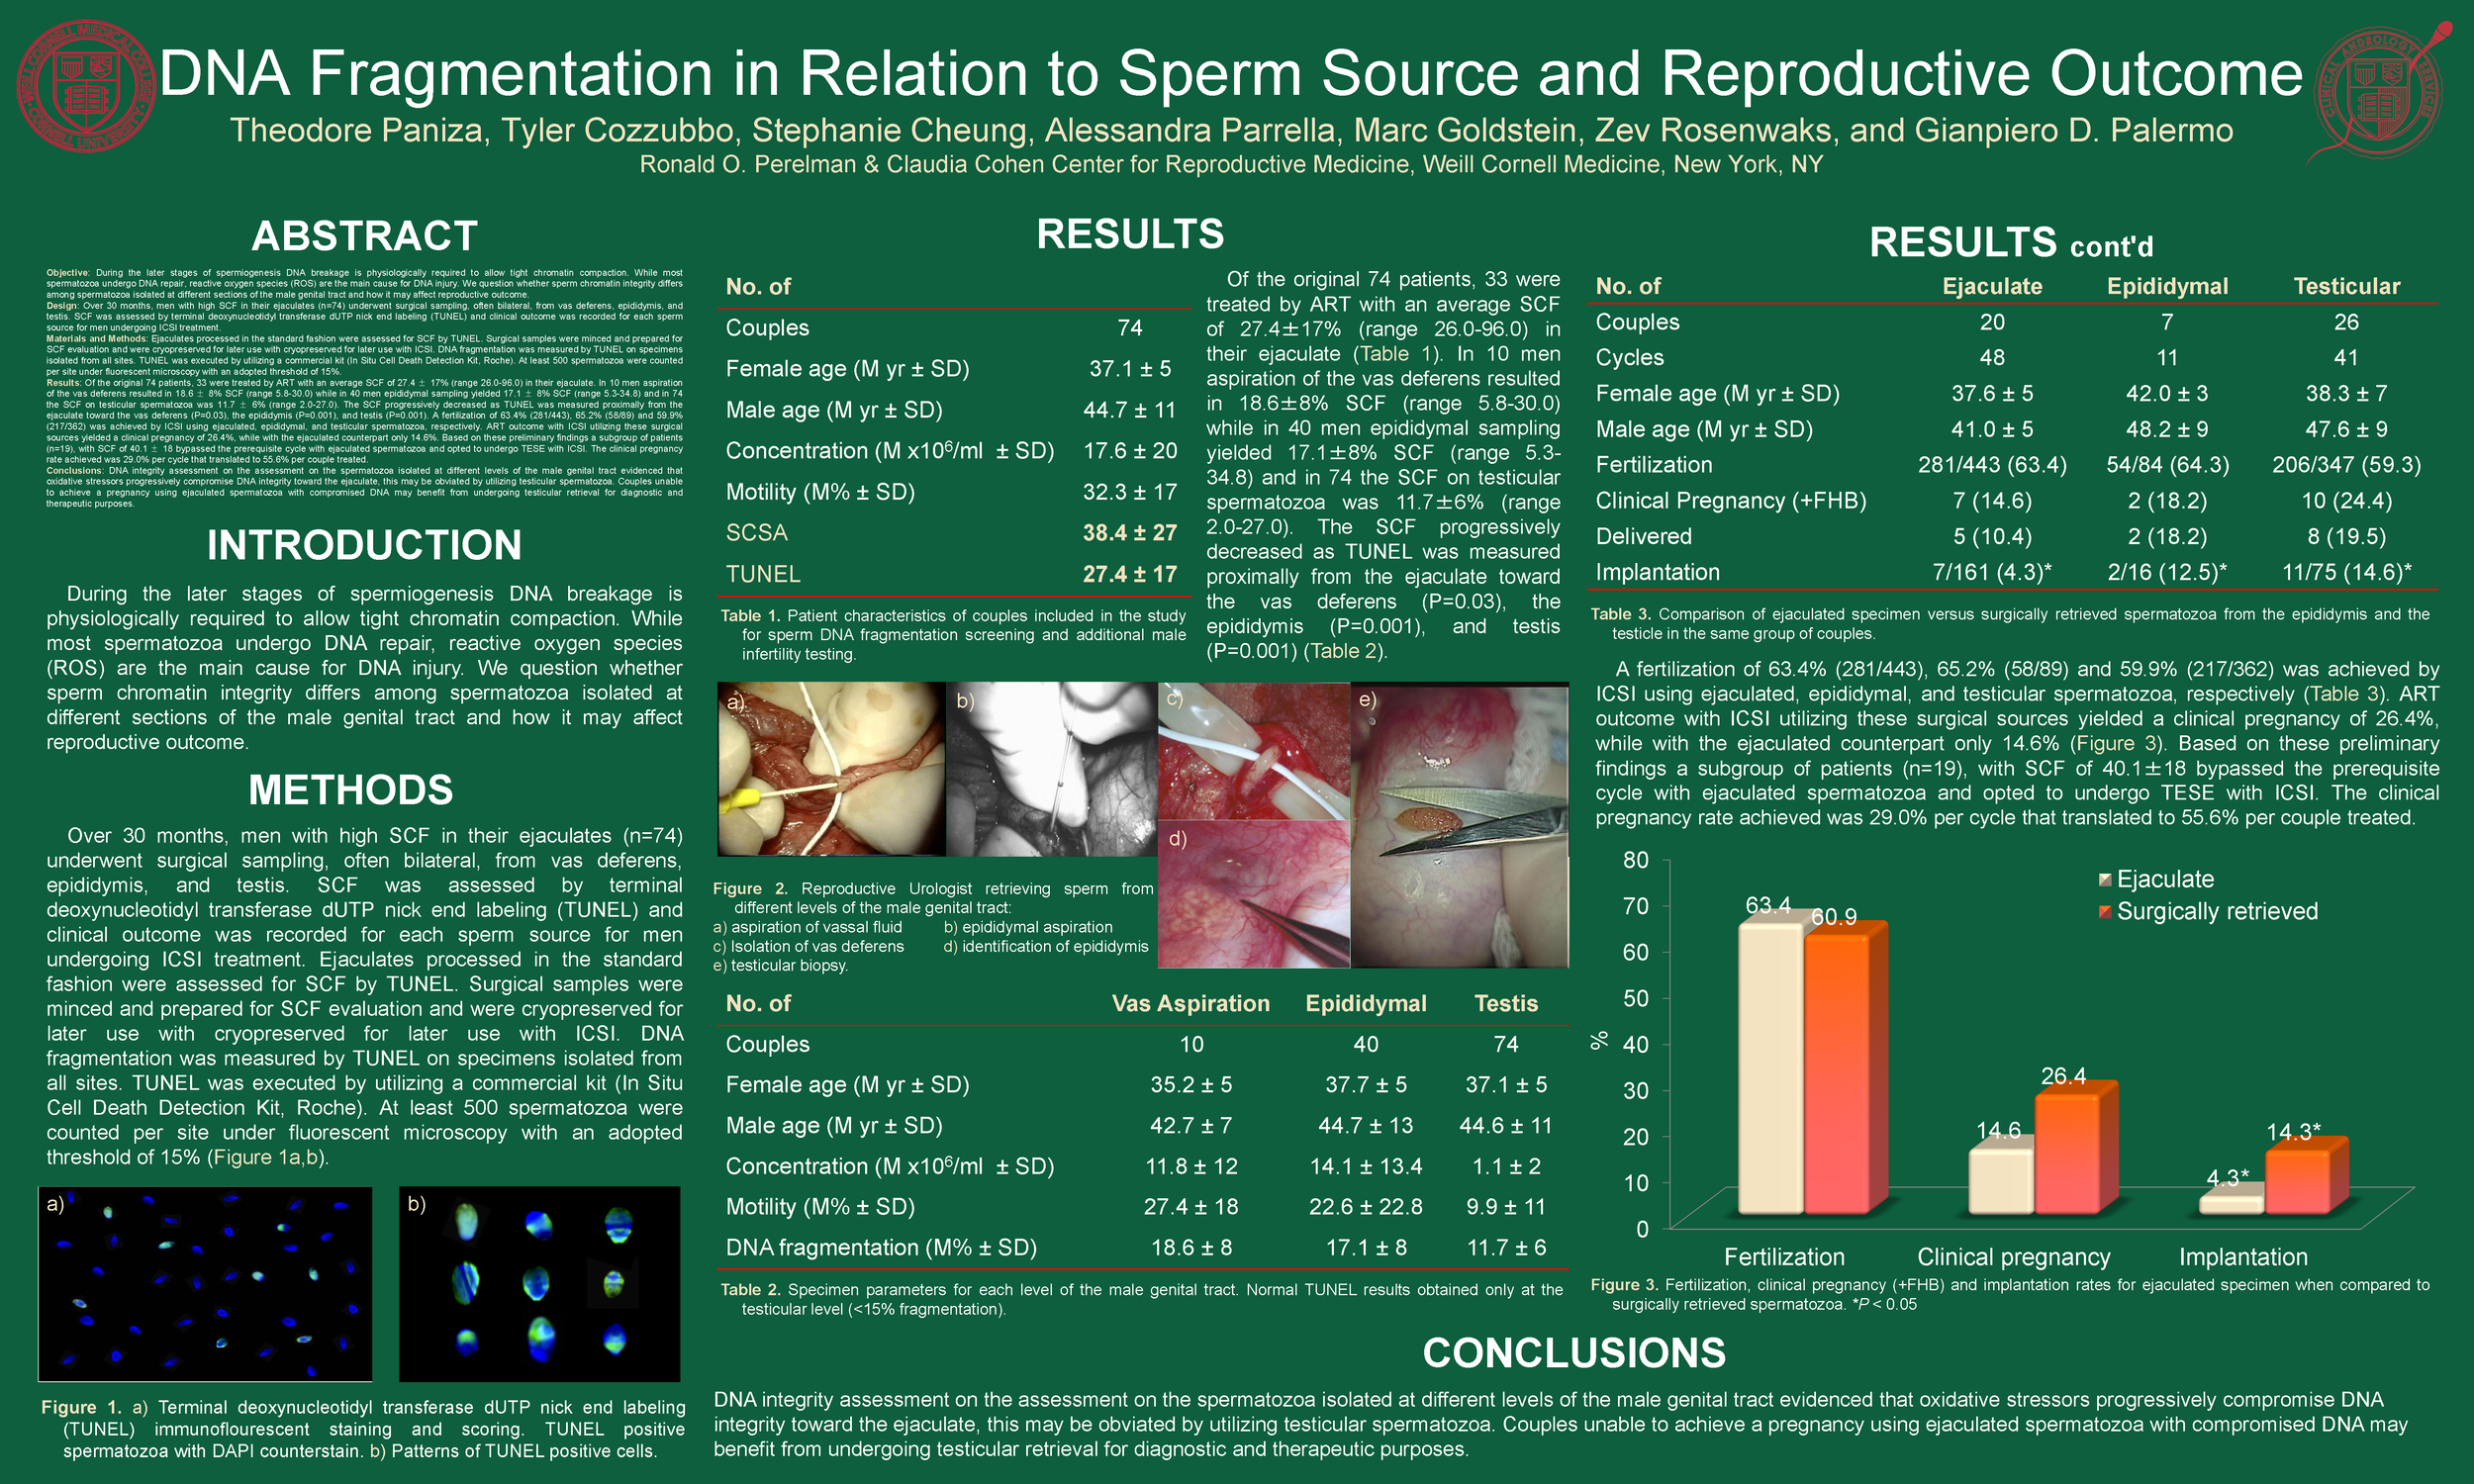 DNA Fragmentation in Relation to Sperm Source and Reproductive Outcome.png